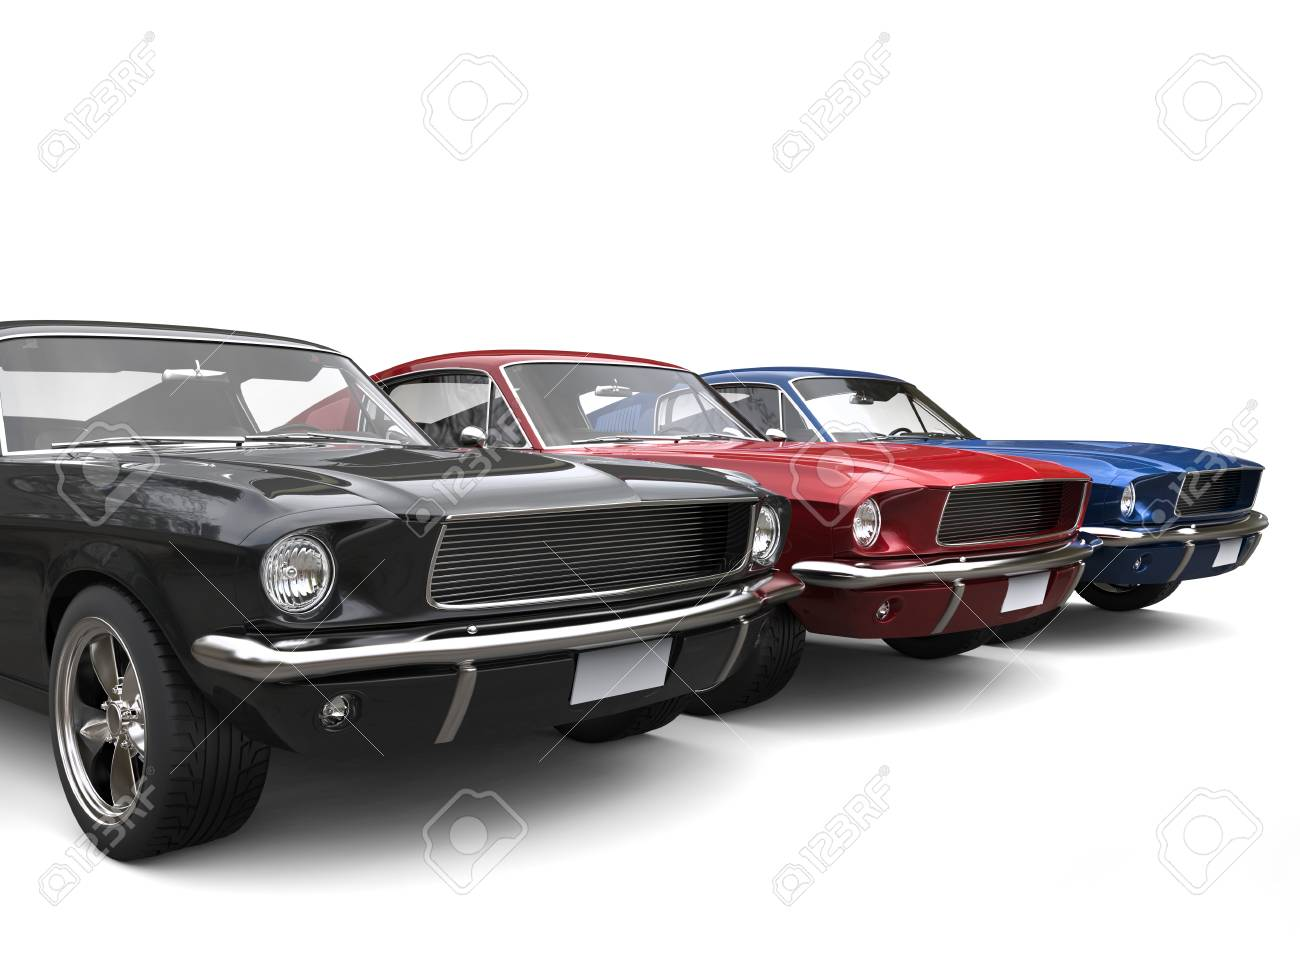 Beautiful Restored Vintage American Muscle Cars Stock Photo, Picture ...